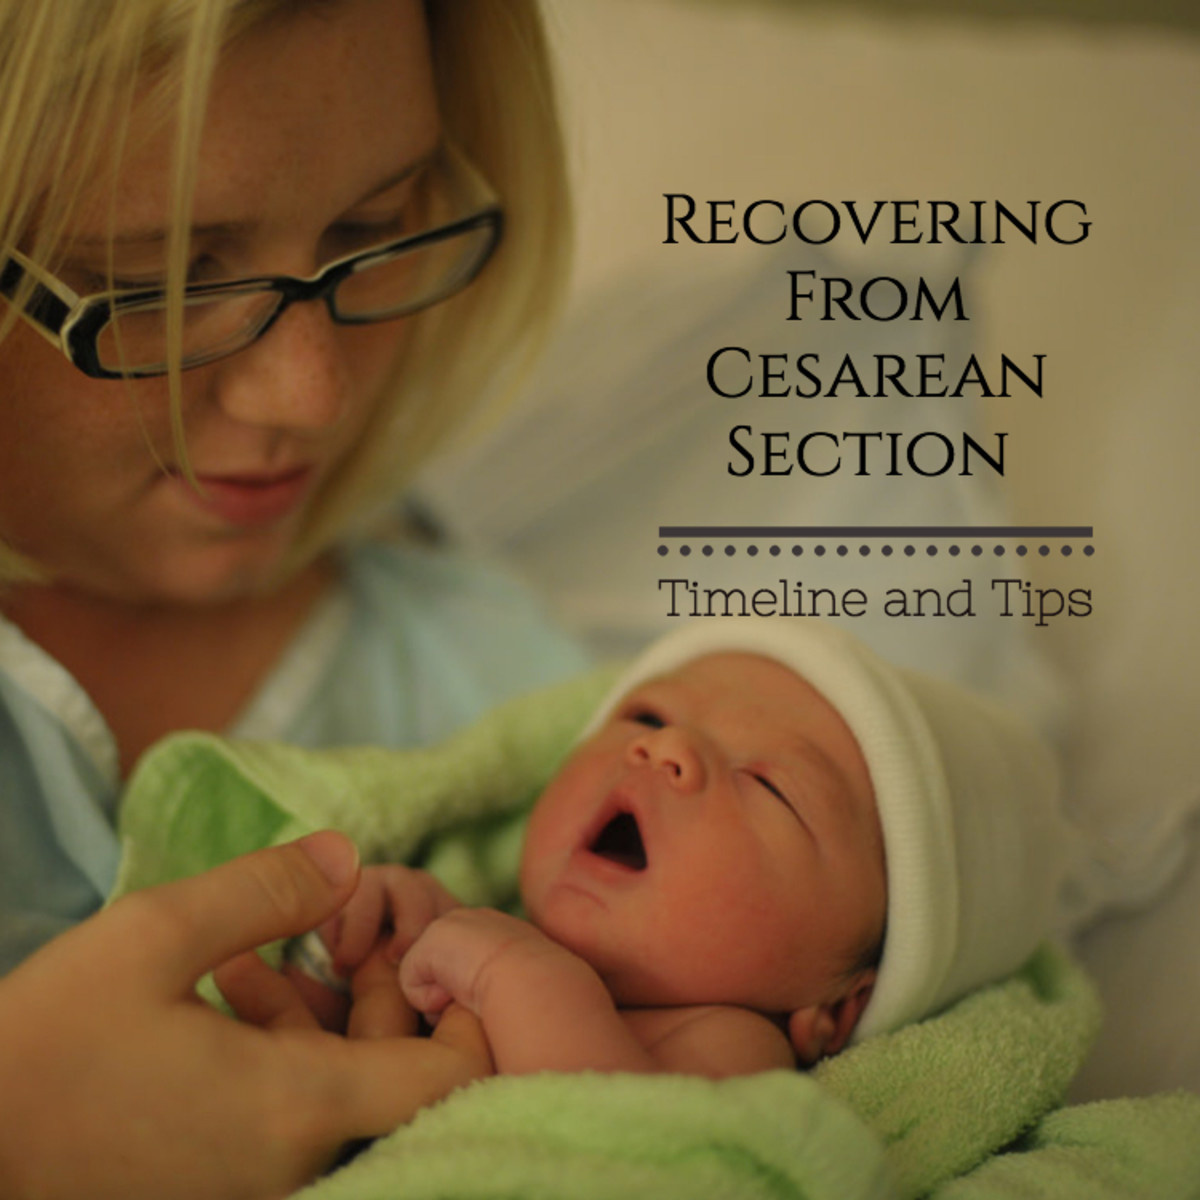 Recovering From Cesarean Section - Timeline and Tips